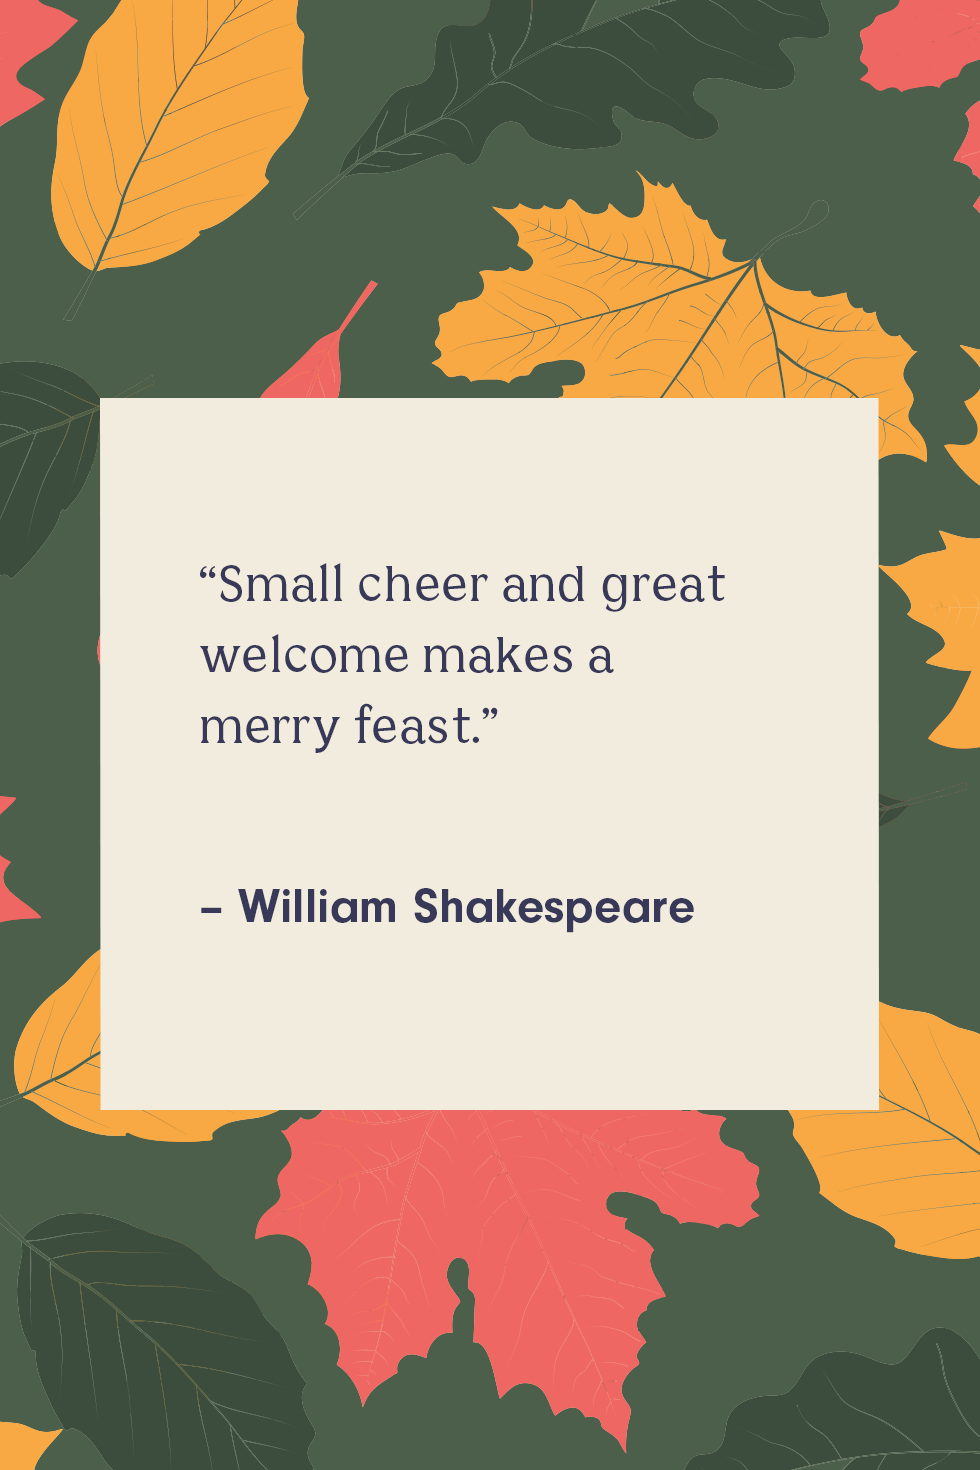 42 Uplifting Thanksgiving Quotes to Share With the Whole Dinner Table | Thanksgiving  quotes, Instagram captions, Shakespeare quotes